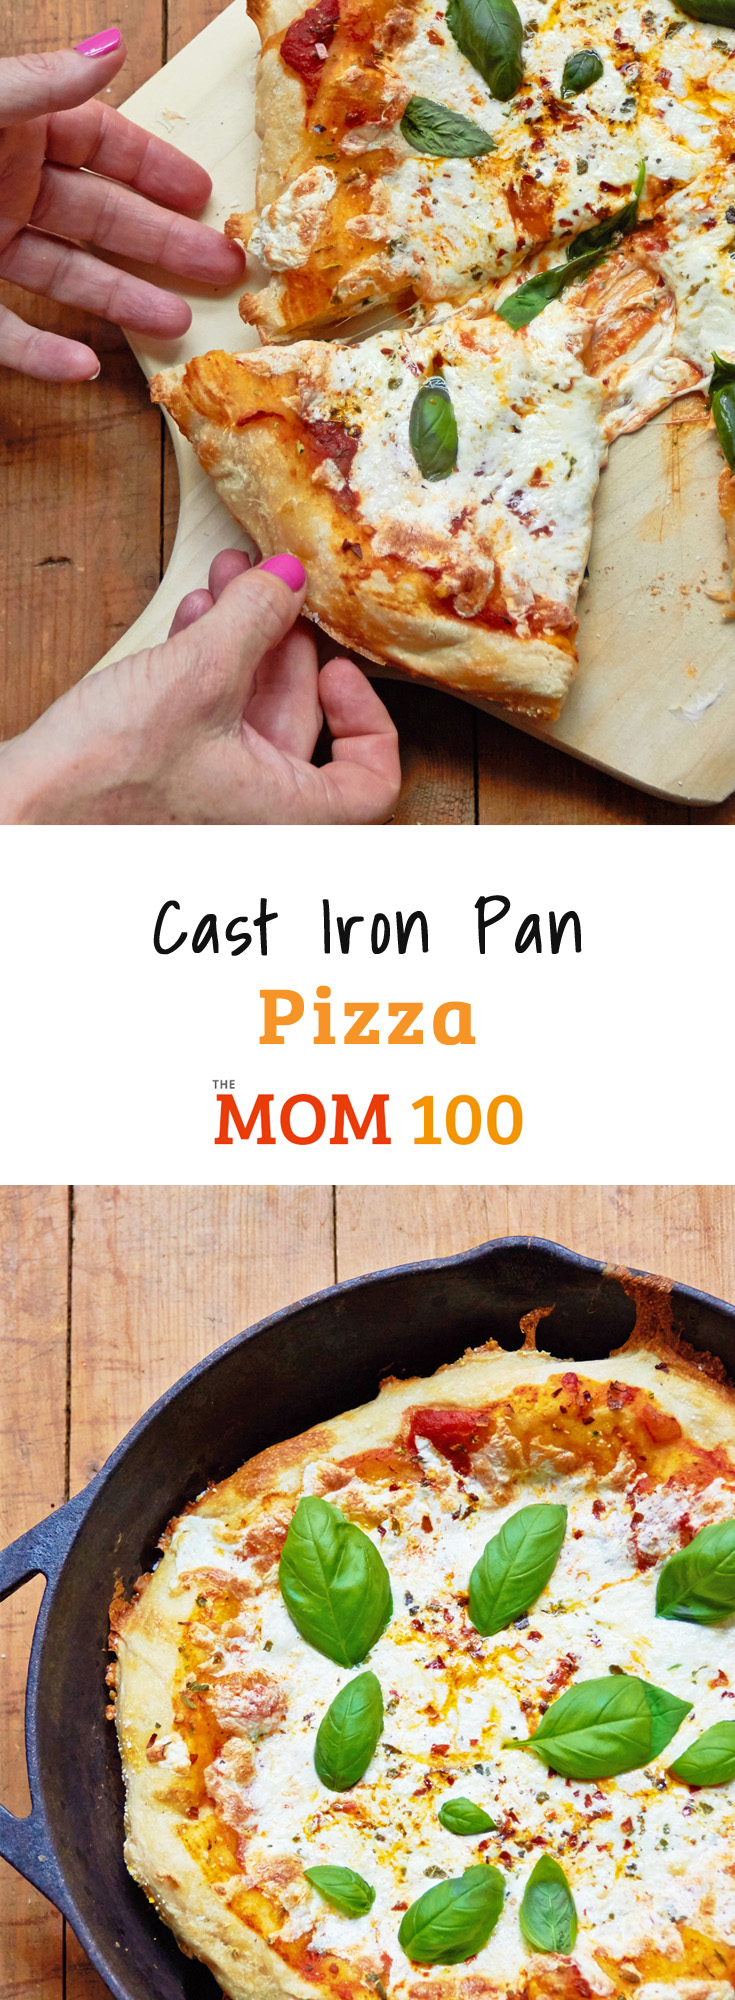 The secret to this Cast Iron Pan Pizza is partiallybaking the dough before the toppings get added—crispy on the bottom, cheesy and NOT soggy on top!